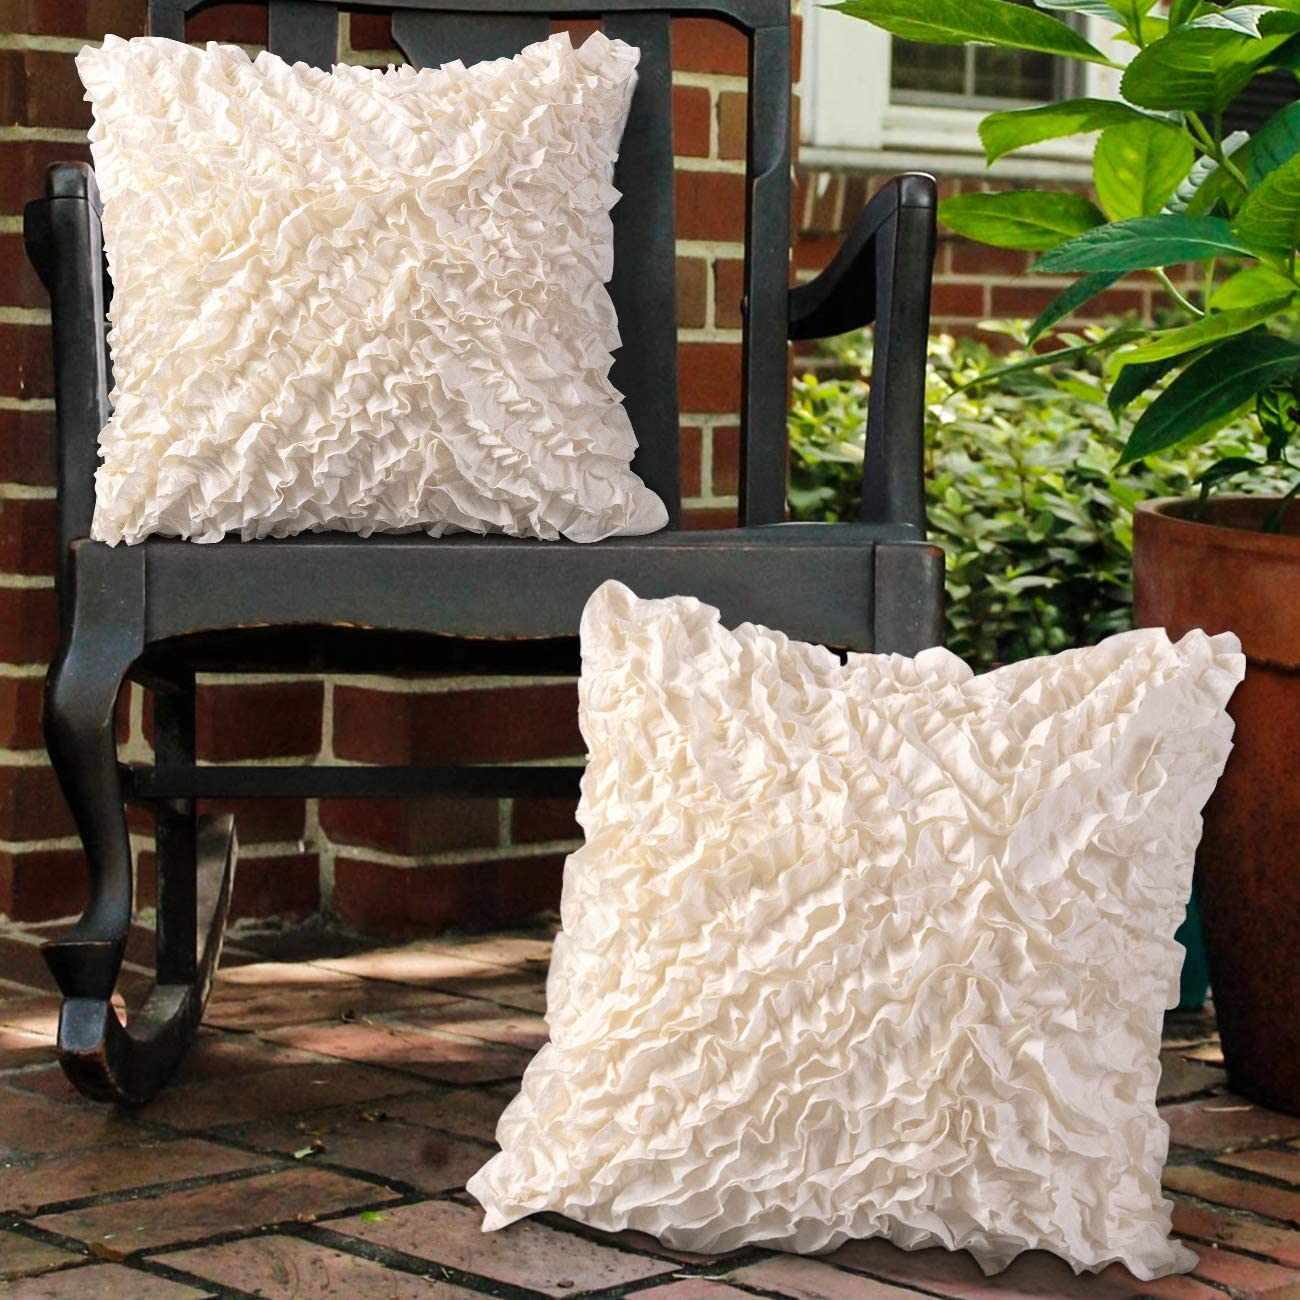 Leeden 18x18 Throw Pillow Covers Christmas (Set of 2) Decorative Square Cushion Cases Cover for Sofa Couch Bed Chair Car Bedding Home Décor Floral Soft Farmhouse Handmade 18 Inches (45x45cm)